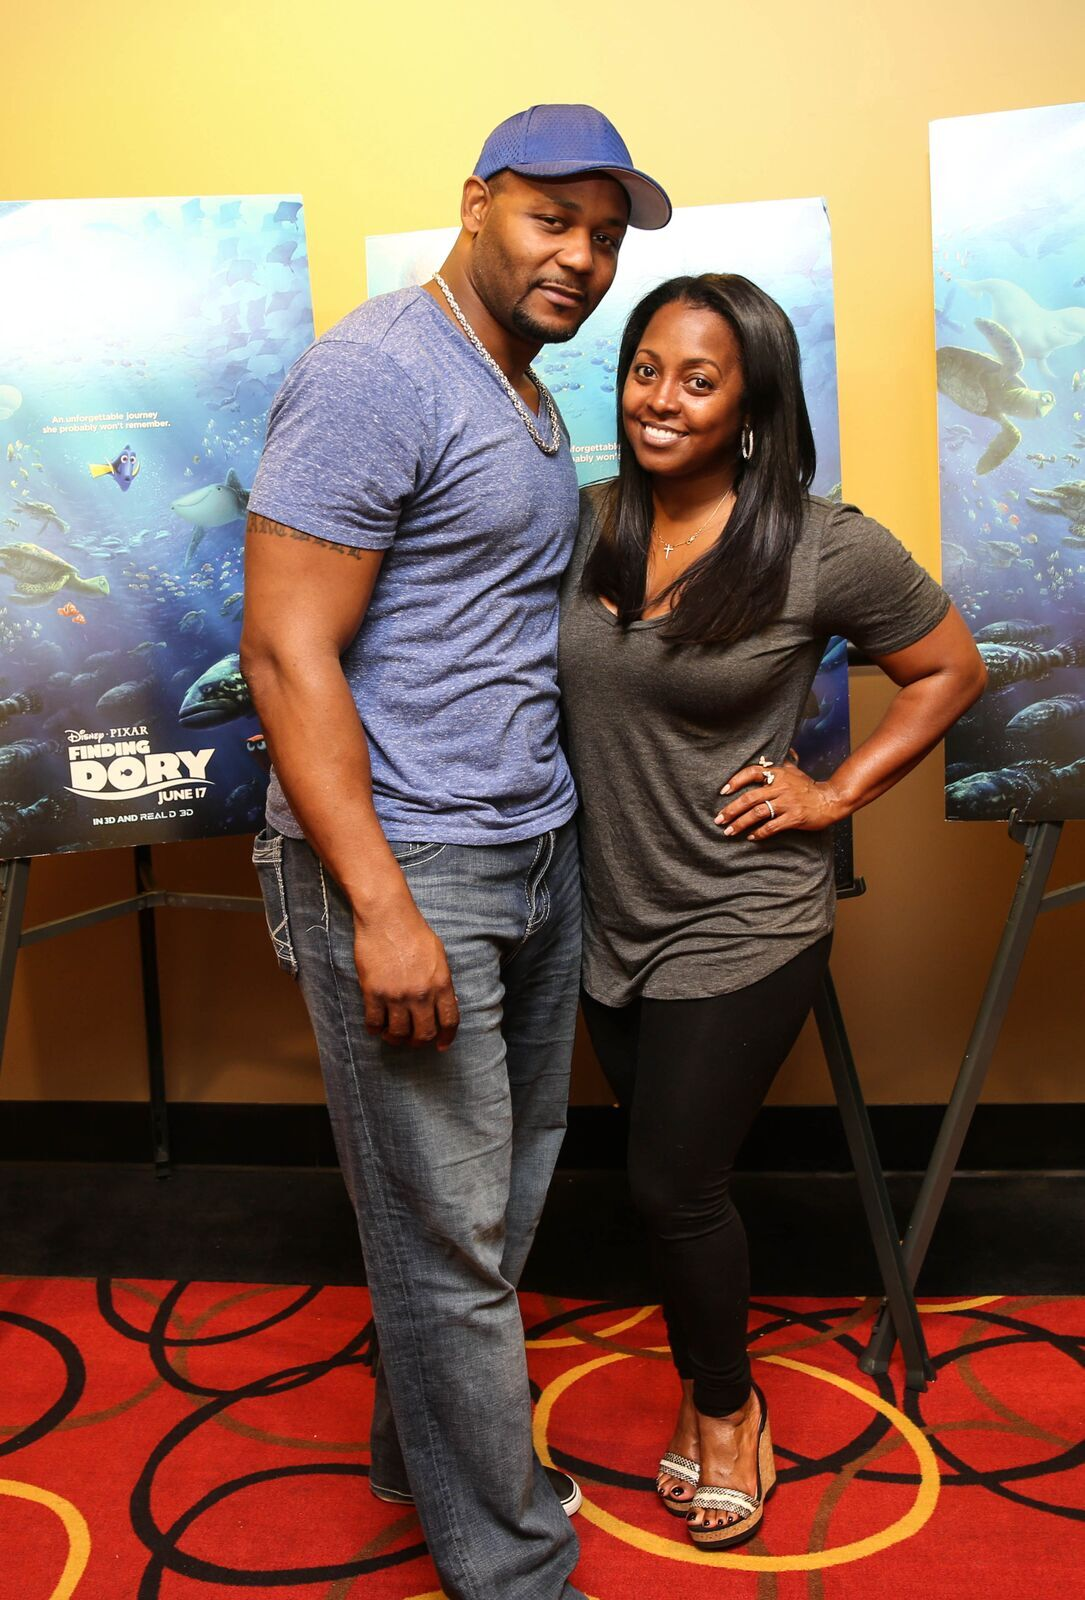 Keshia Knight Pulliam and Ed Hartwell attend 'Finding Dory' advance screening at AMC Phipps Plaza on June 15, 2016 in Atlanta, Georgia.   Source: Getty Images